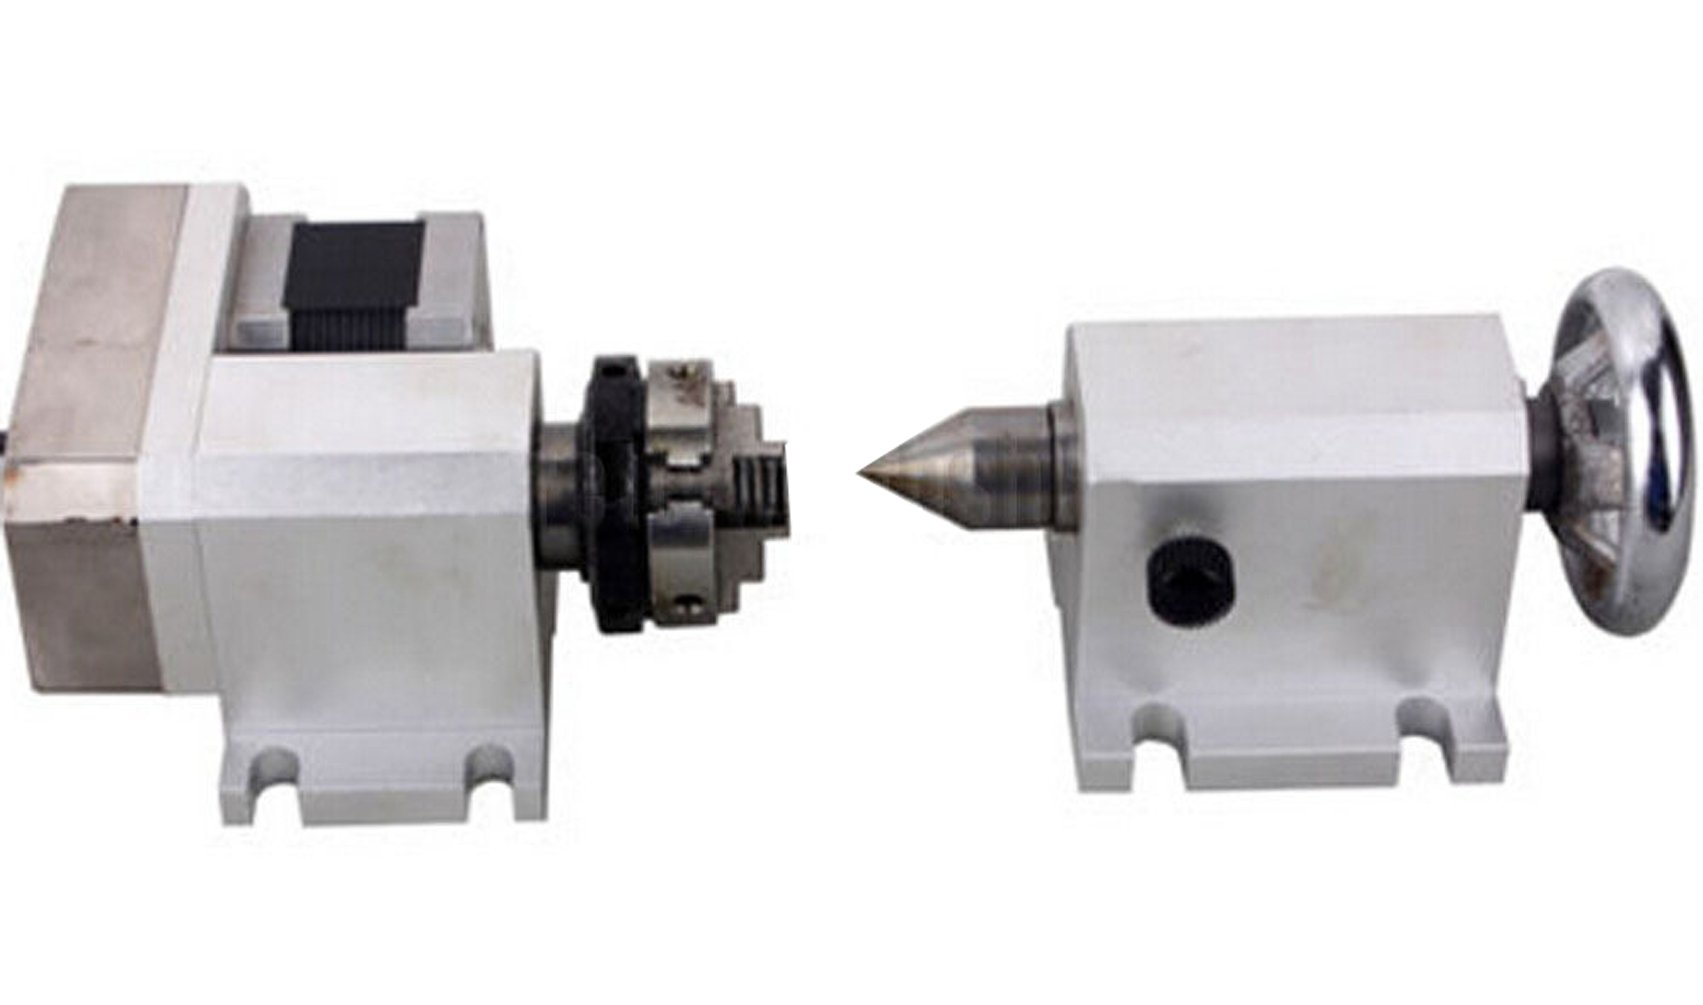 SUNWIN CNC Engraving Machine Router Rotational Rotary Axis F A-Axis, 4th-Axis+TailStock